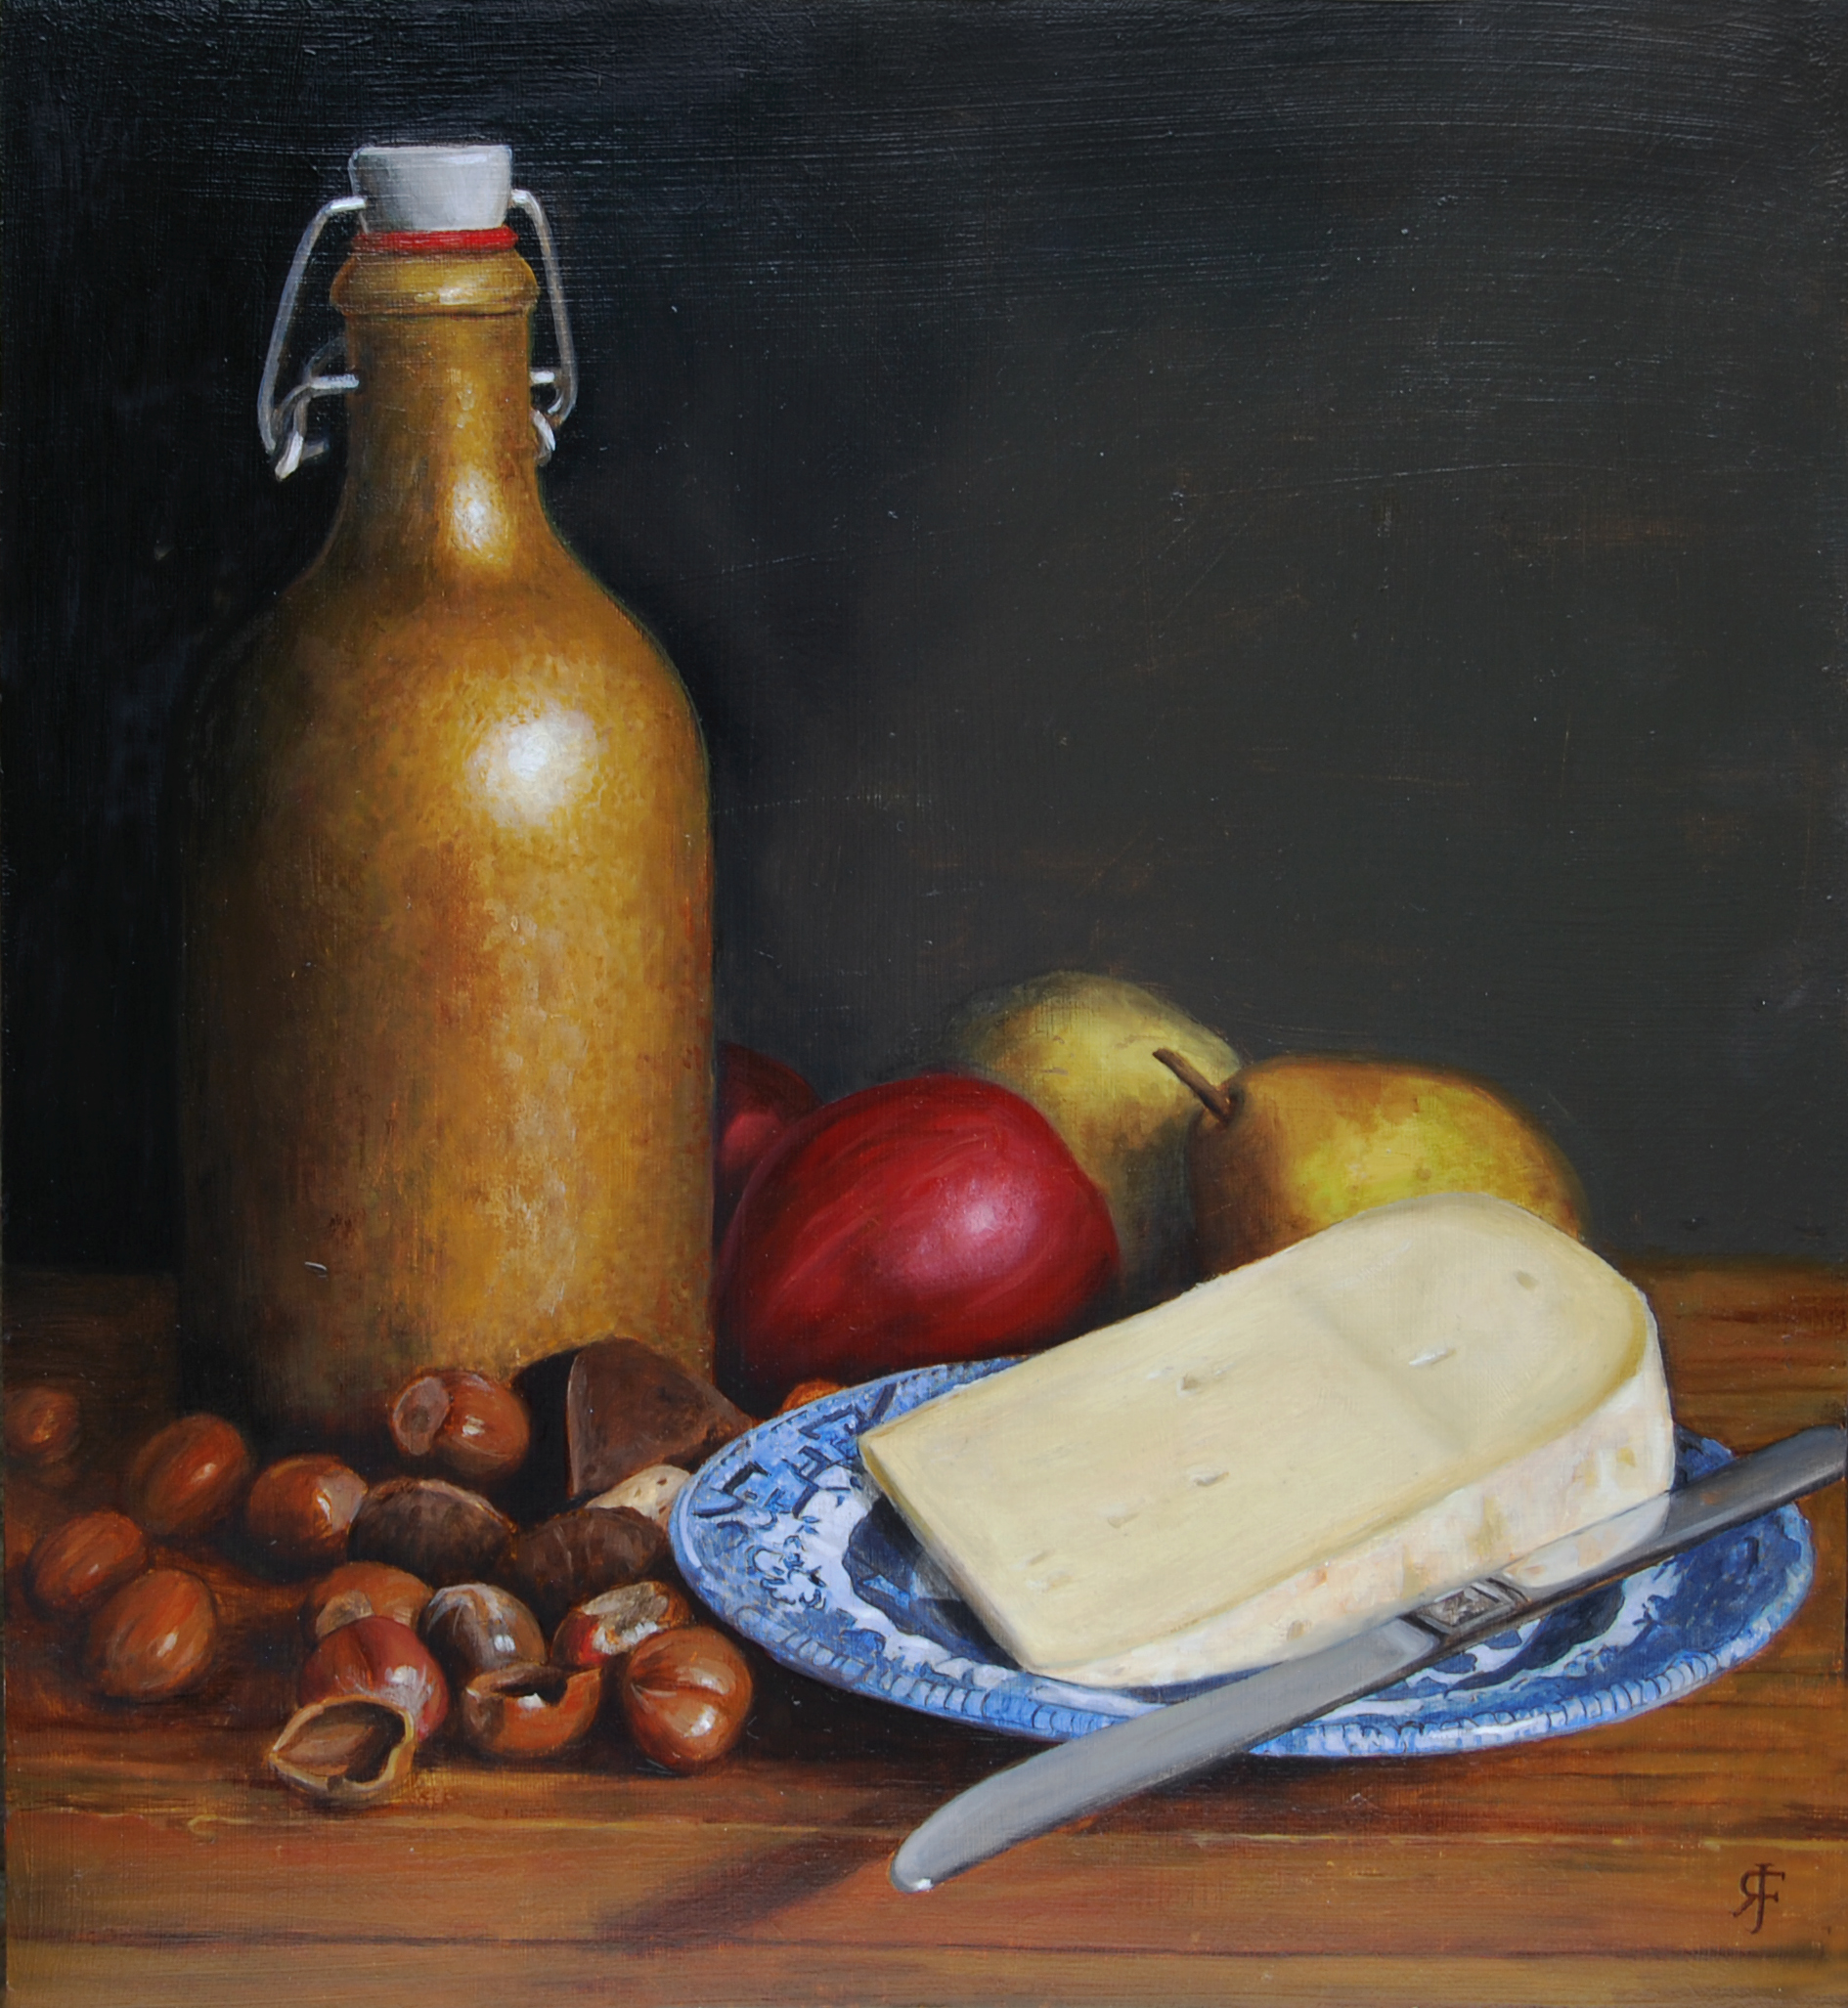 Cheese and Hazelnuts Still Life